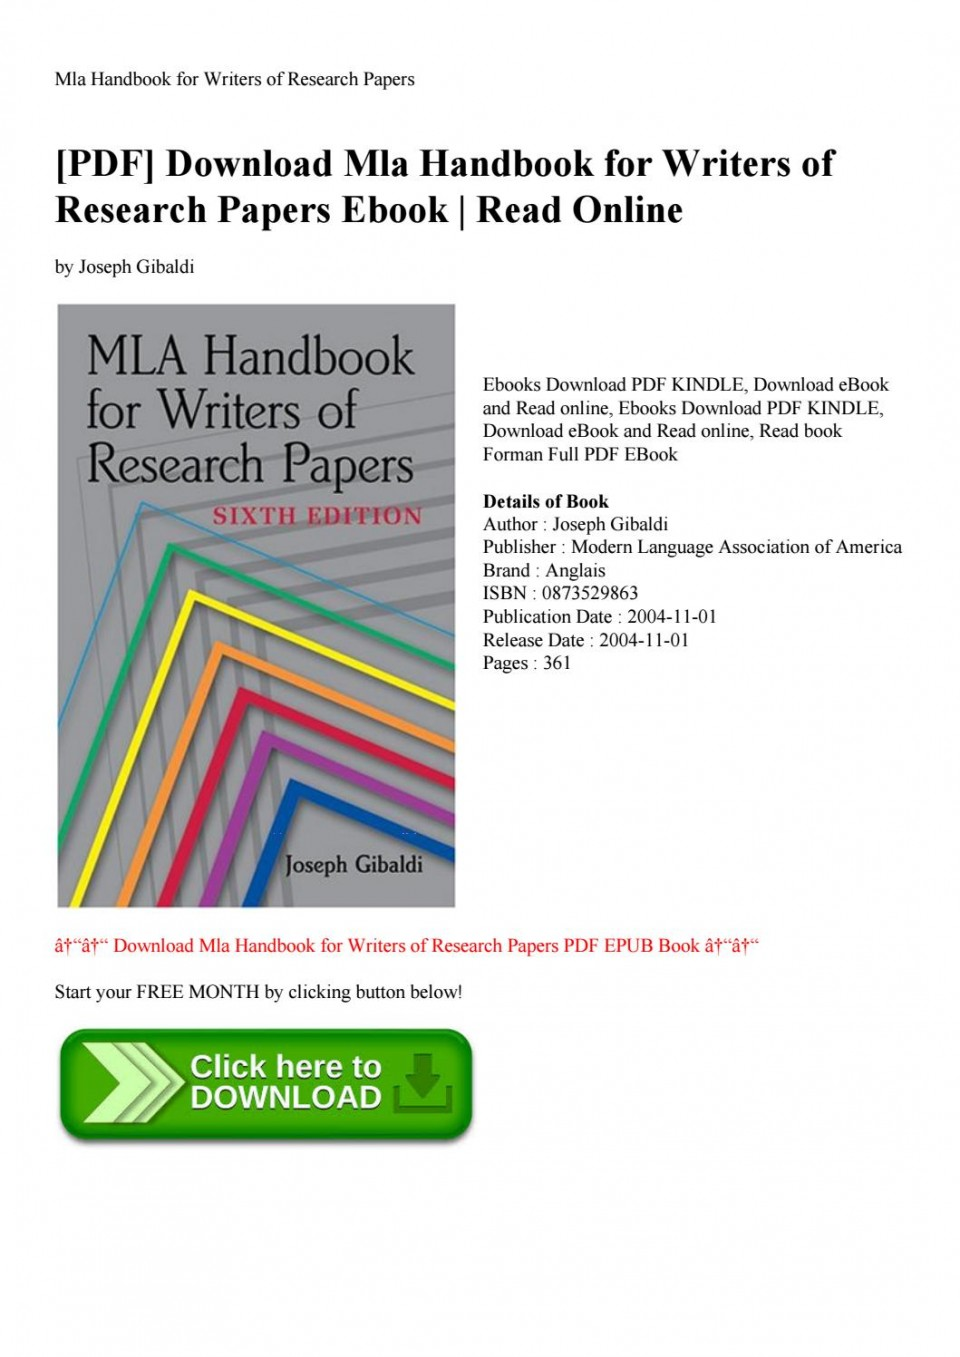 002 Mla Handbook For Writing Research Papers Pdf Paper Page 1 Beautiful Writers Of 5th Edition 7th Free Download 960